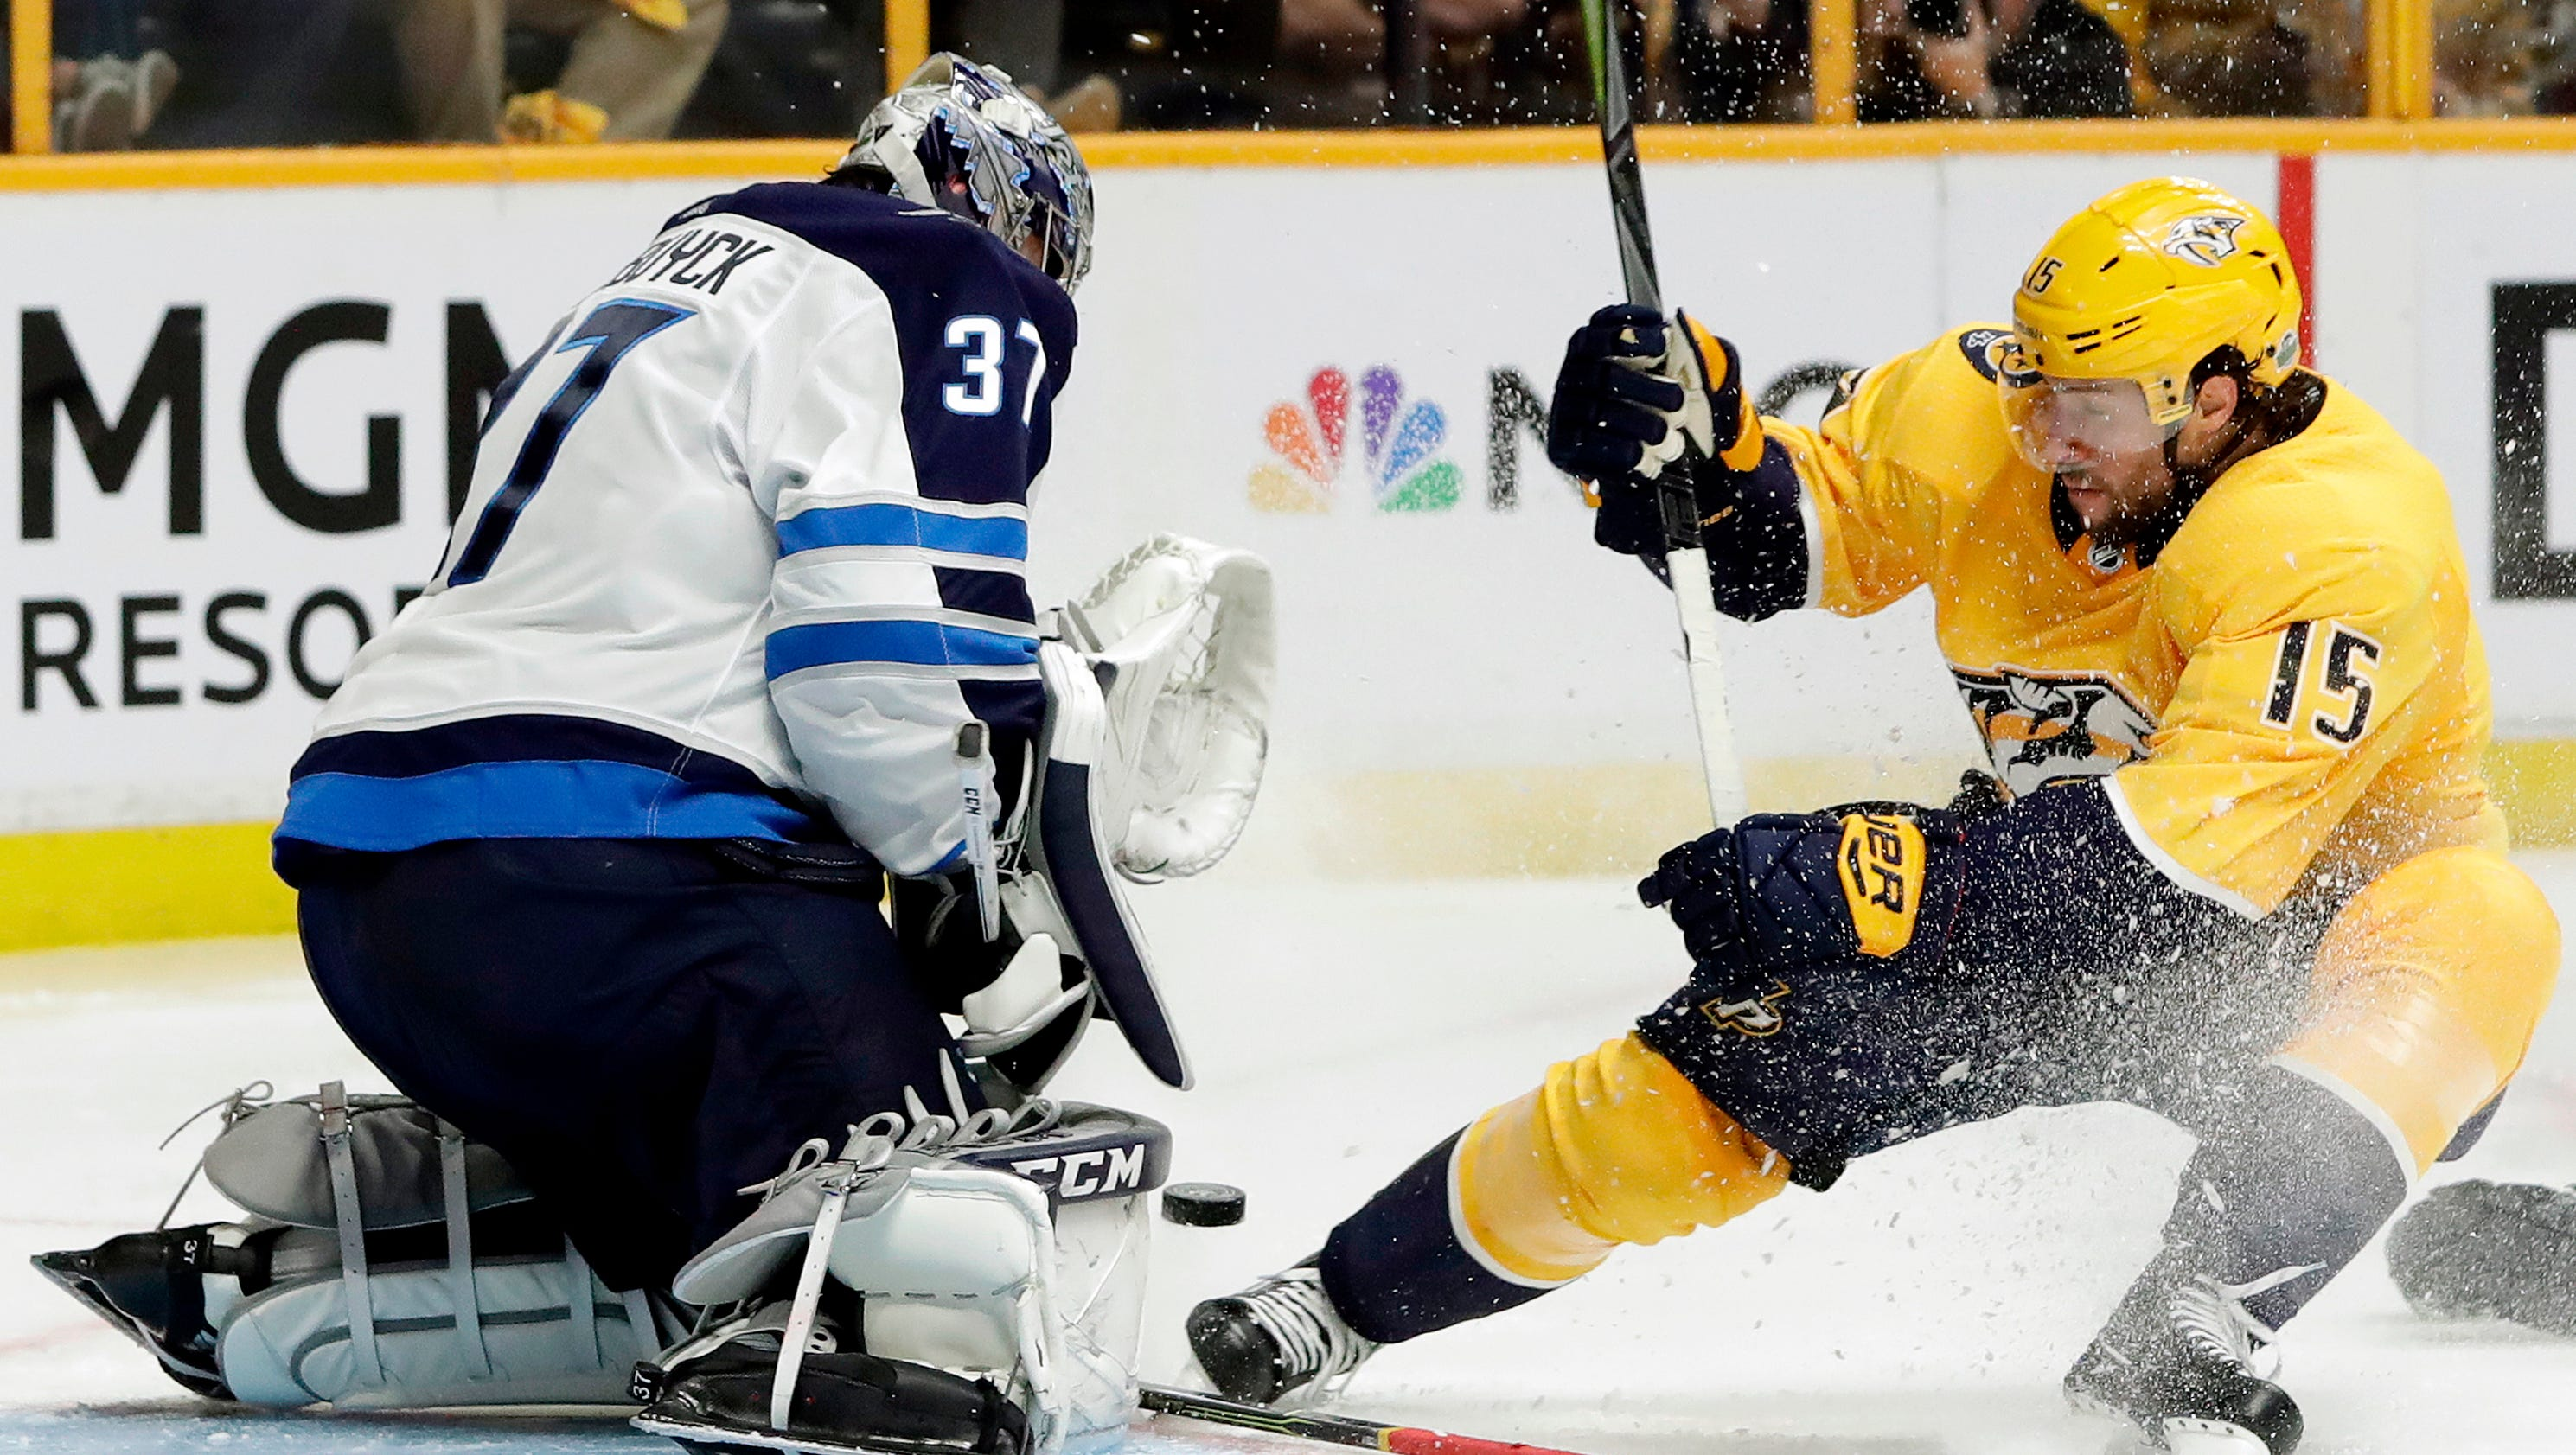 Hellebuyck made 47 saves and the Jets beat the Nashville Predators ffe214f18